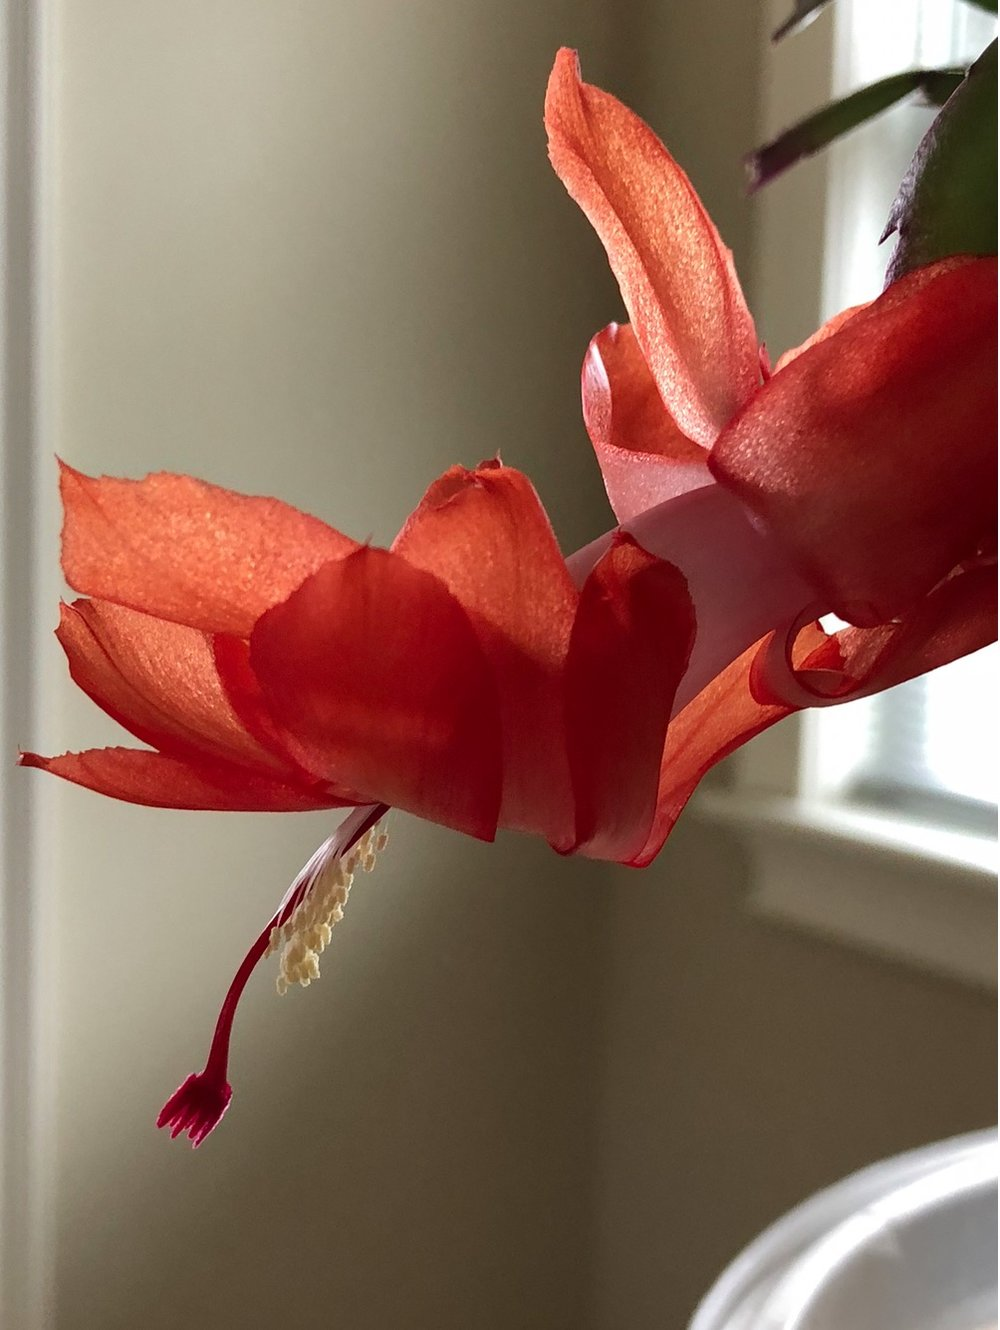 Christmas Cactus in bloom. Saratoga Springs, NY. photo ©2017seanwalmsley